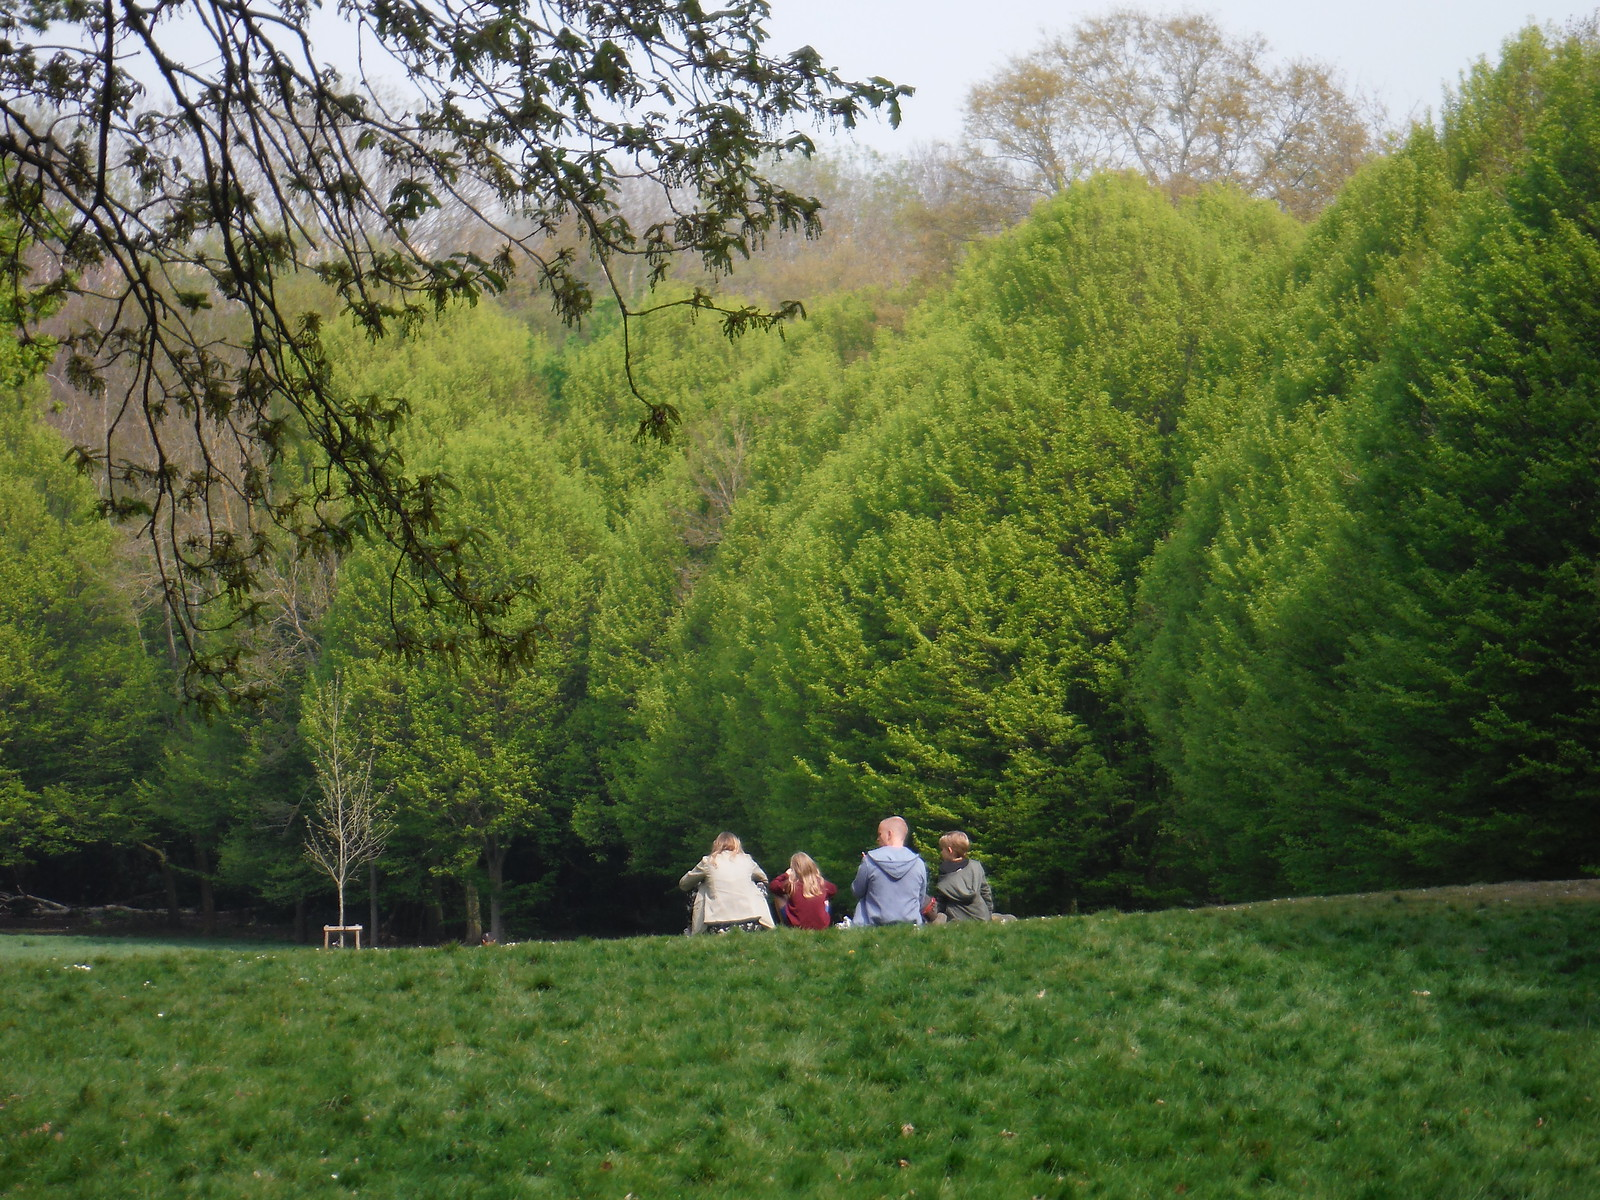 Family in Meadow, enjoying the views SWC Short Walk 46 - Beckenham Place Park (Ravensbourne to Beckenham Hill)